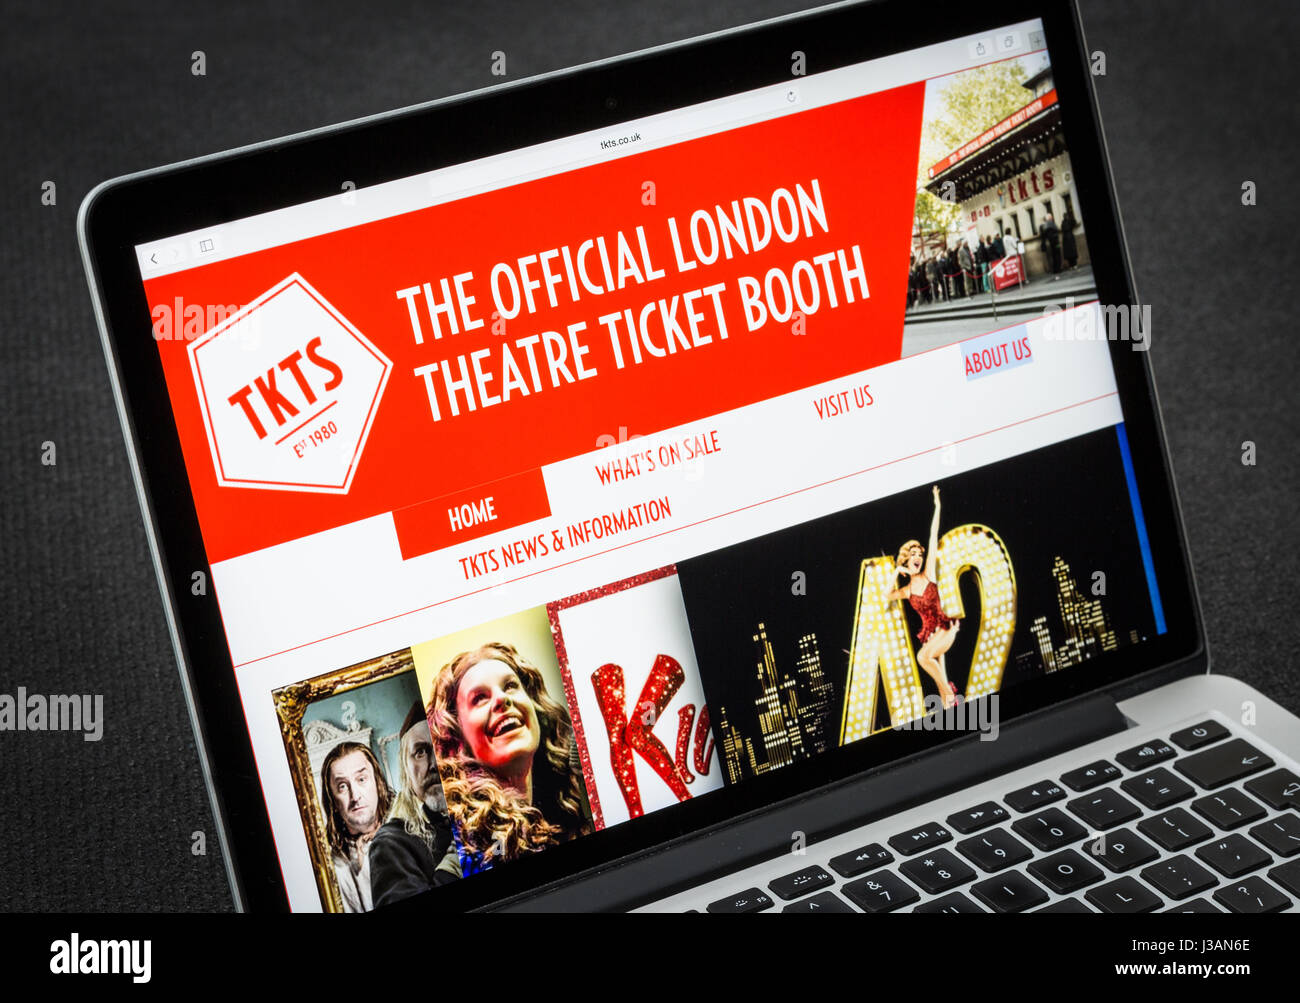 TKTS The official London Theatre ticket booth website - Stock Image